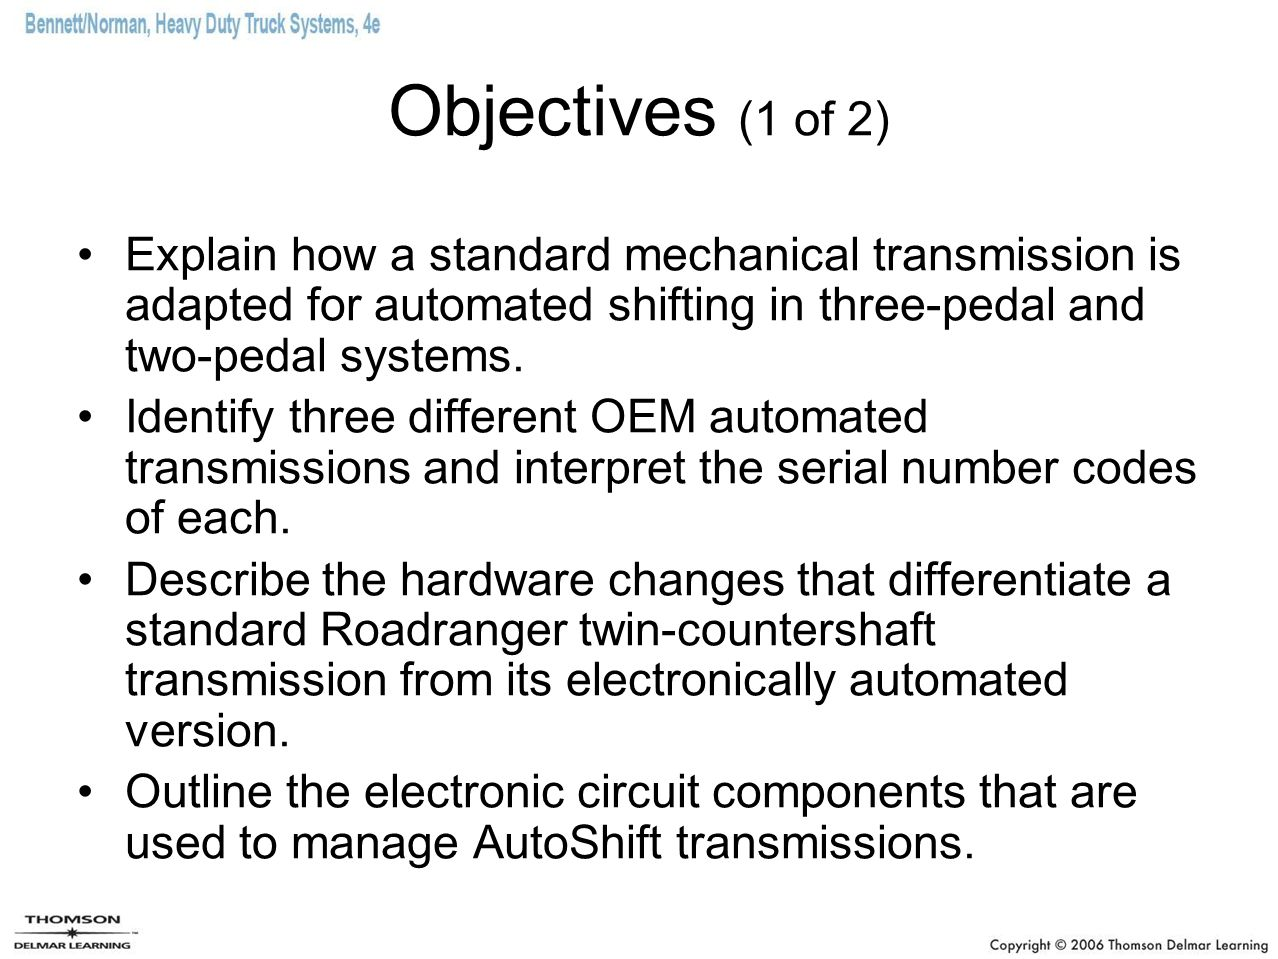 Objectives (1 of 2) Explain how a standard mechanical transmission is adapted for automated shifting in three-pedal and two-pedal systems. Identify th